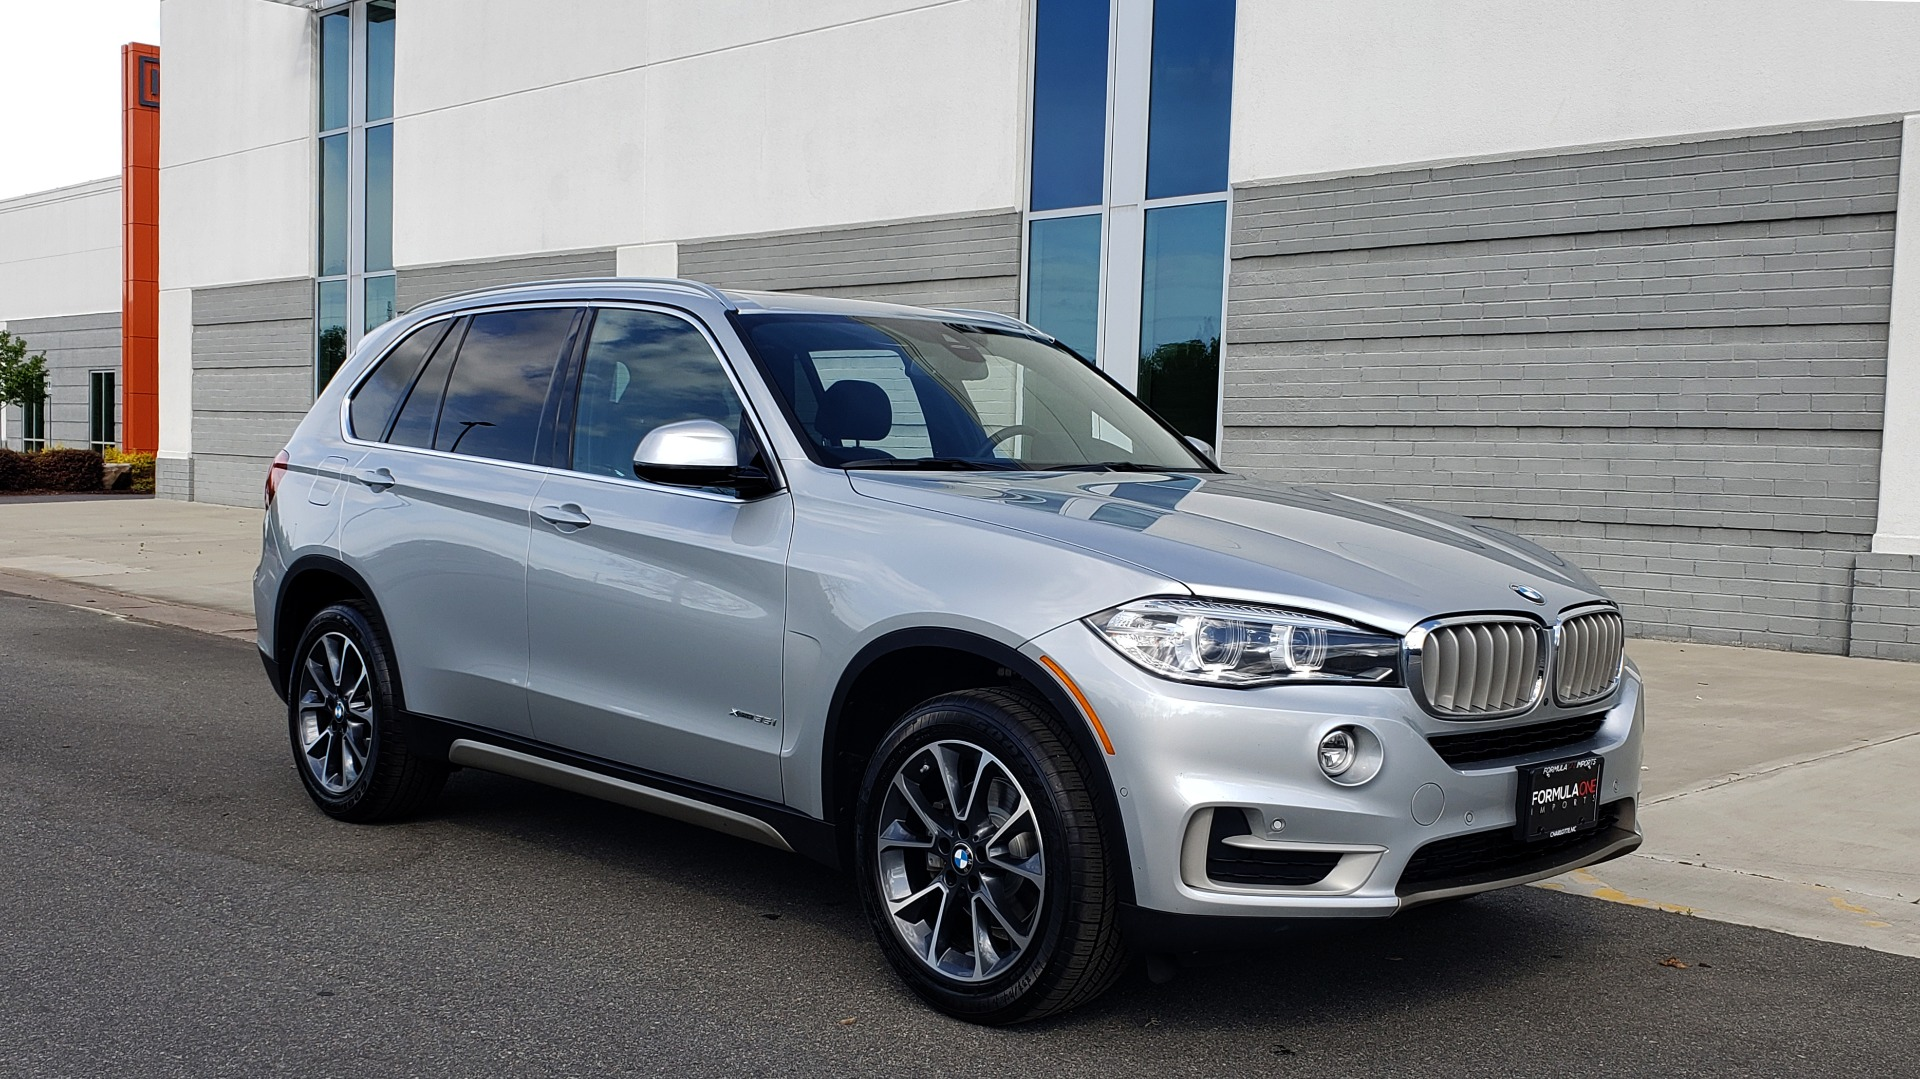 Used 2018 BMW X5 XDRIVE35I PREMIUM / NAV / PANO-ROOF / DRIVER ASST / REARVIEW for sale Sold at Formula Imports in Charlotte NC 28227 10